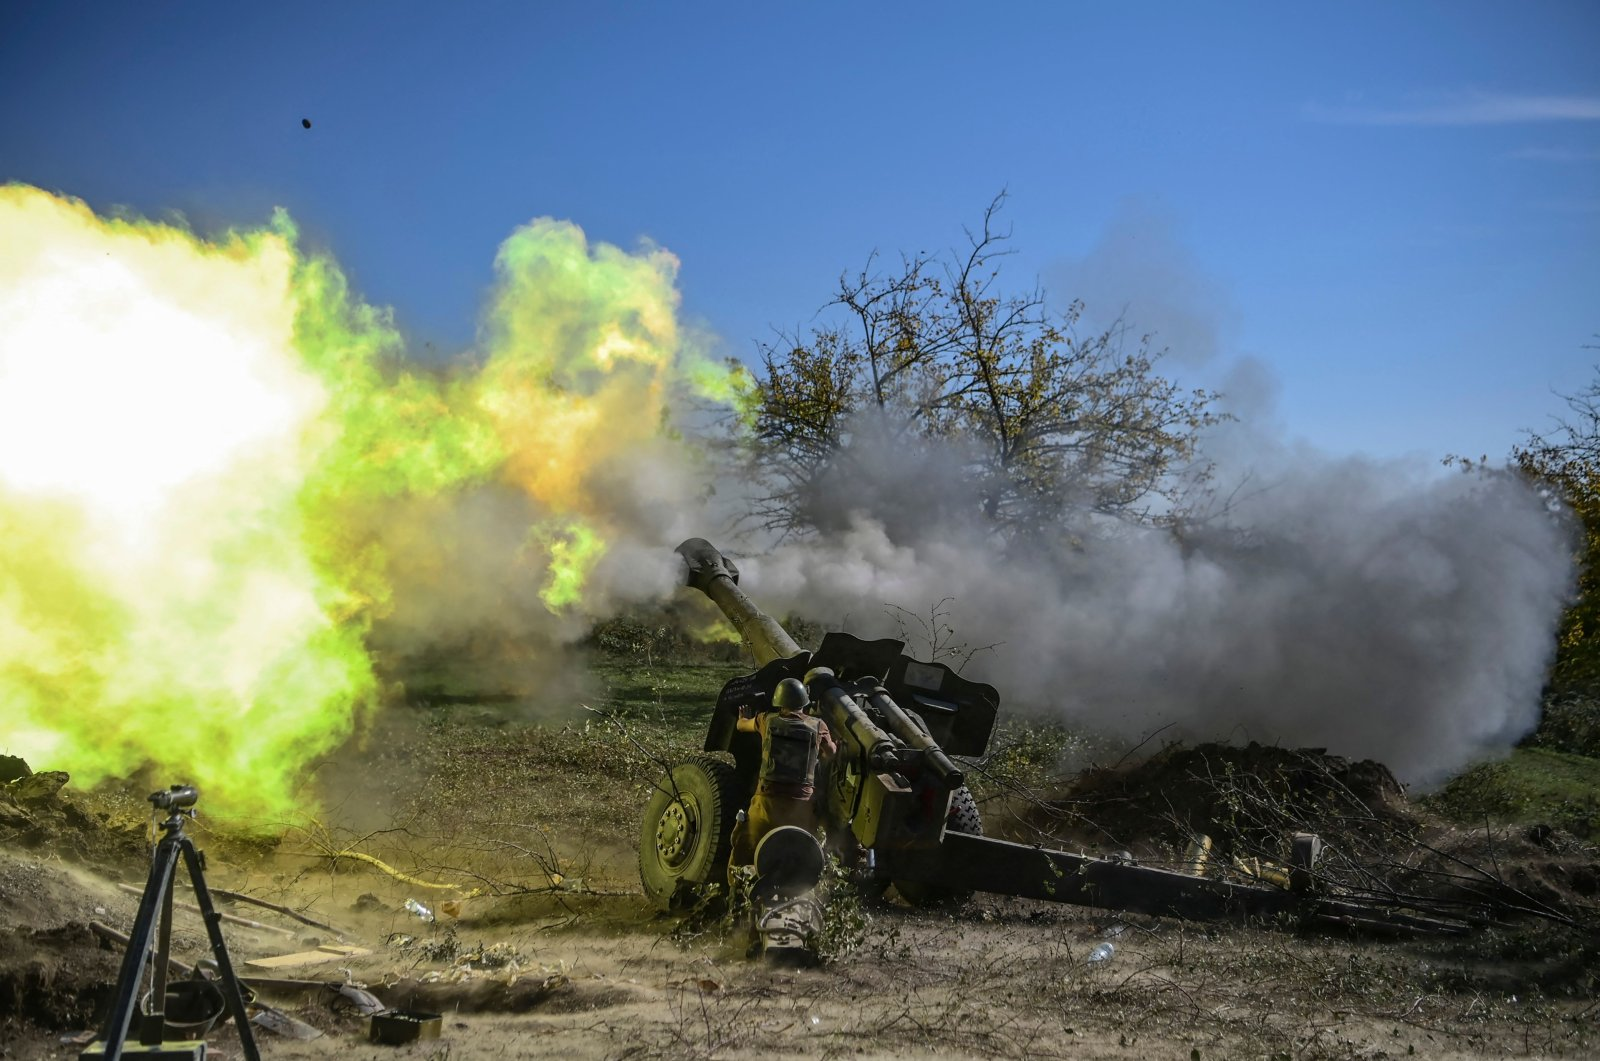 An Armenian soldier fires artillery on the front line during last year's 44-day conflict between Armenian and Azerbaijani forces over the region of Nagorno-Karabakh, Azerbaijan, Oct. 25, 2020. (AFP File Photo)